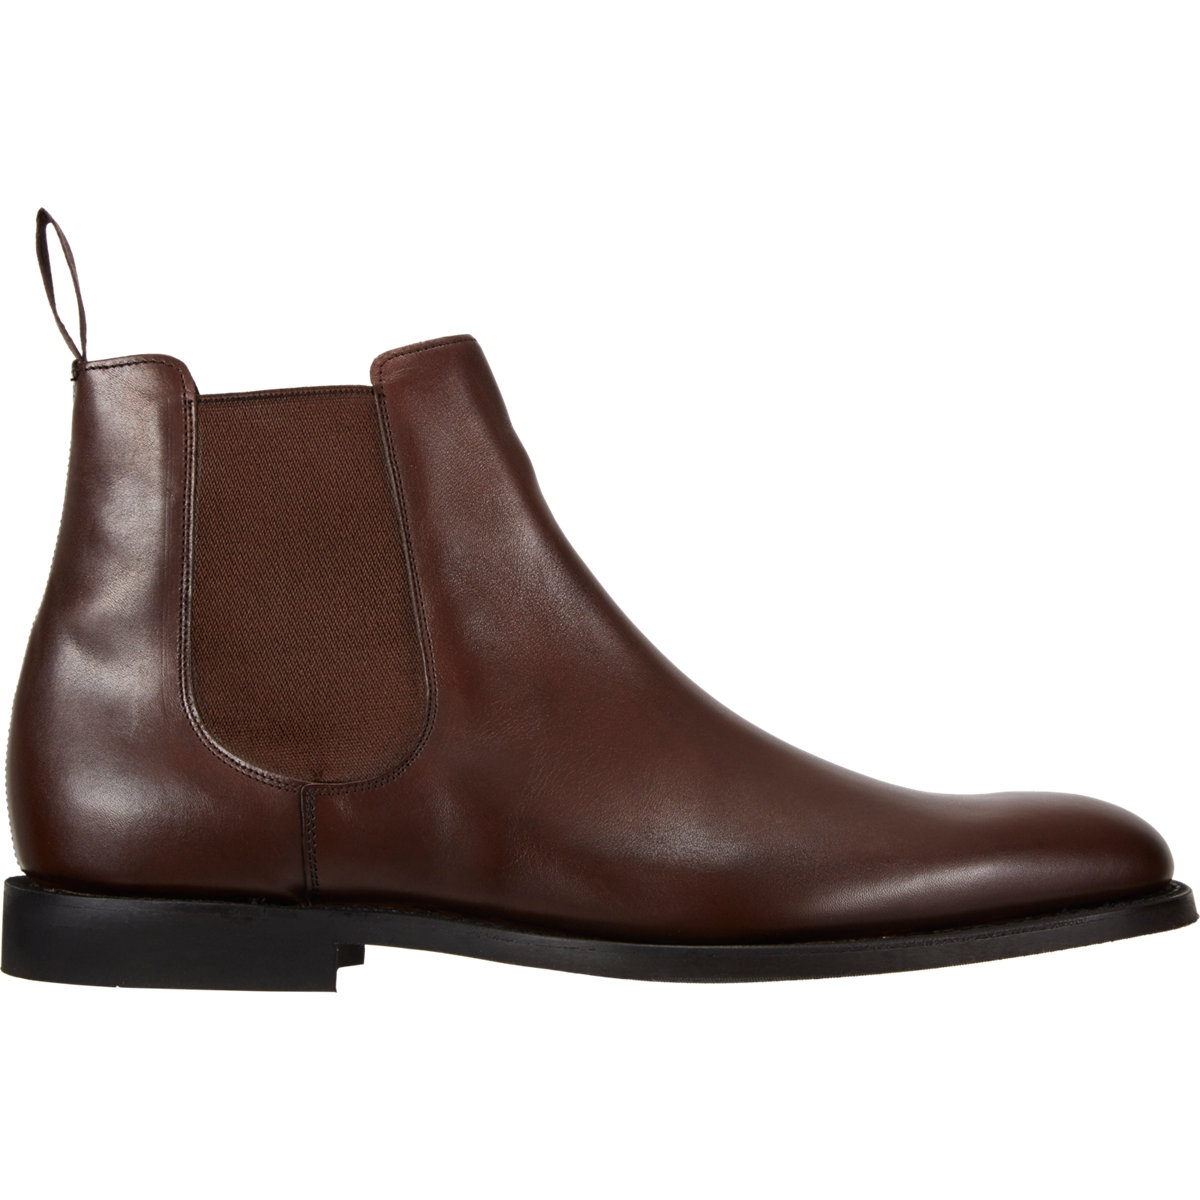 church 39 s ely plain toe chelsea boots in brown for men lyst. Black Bedroom Furniture Sets. Home Design Ideas